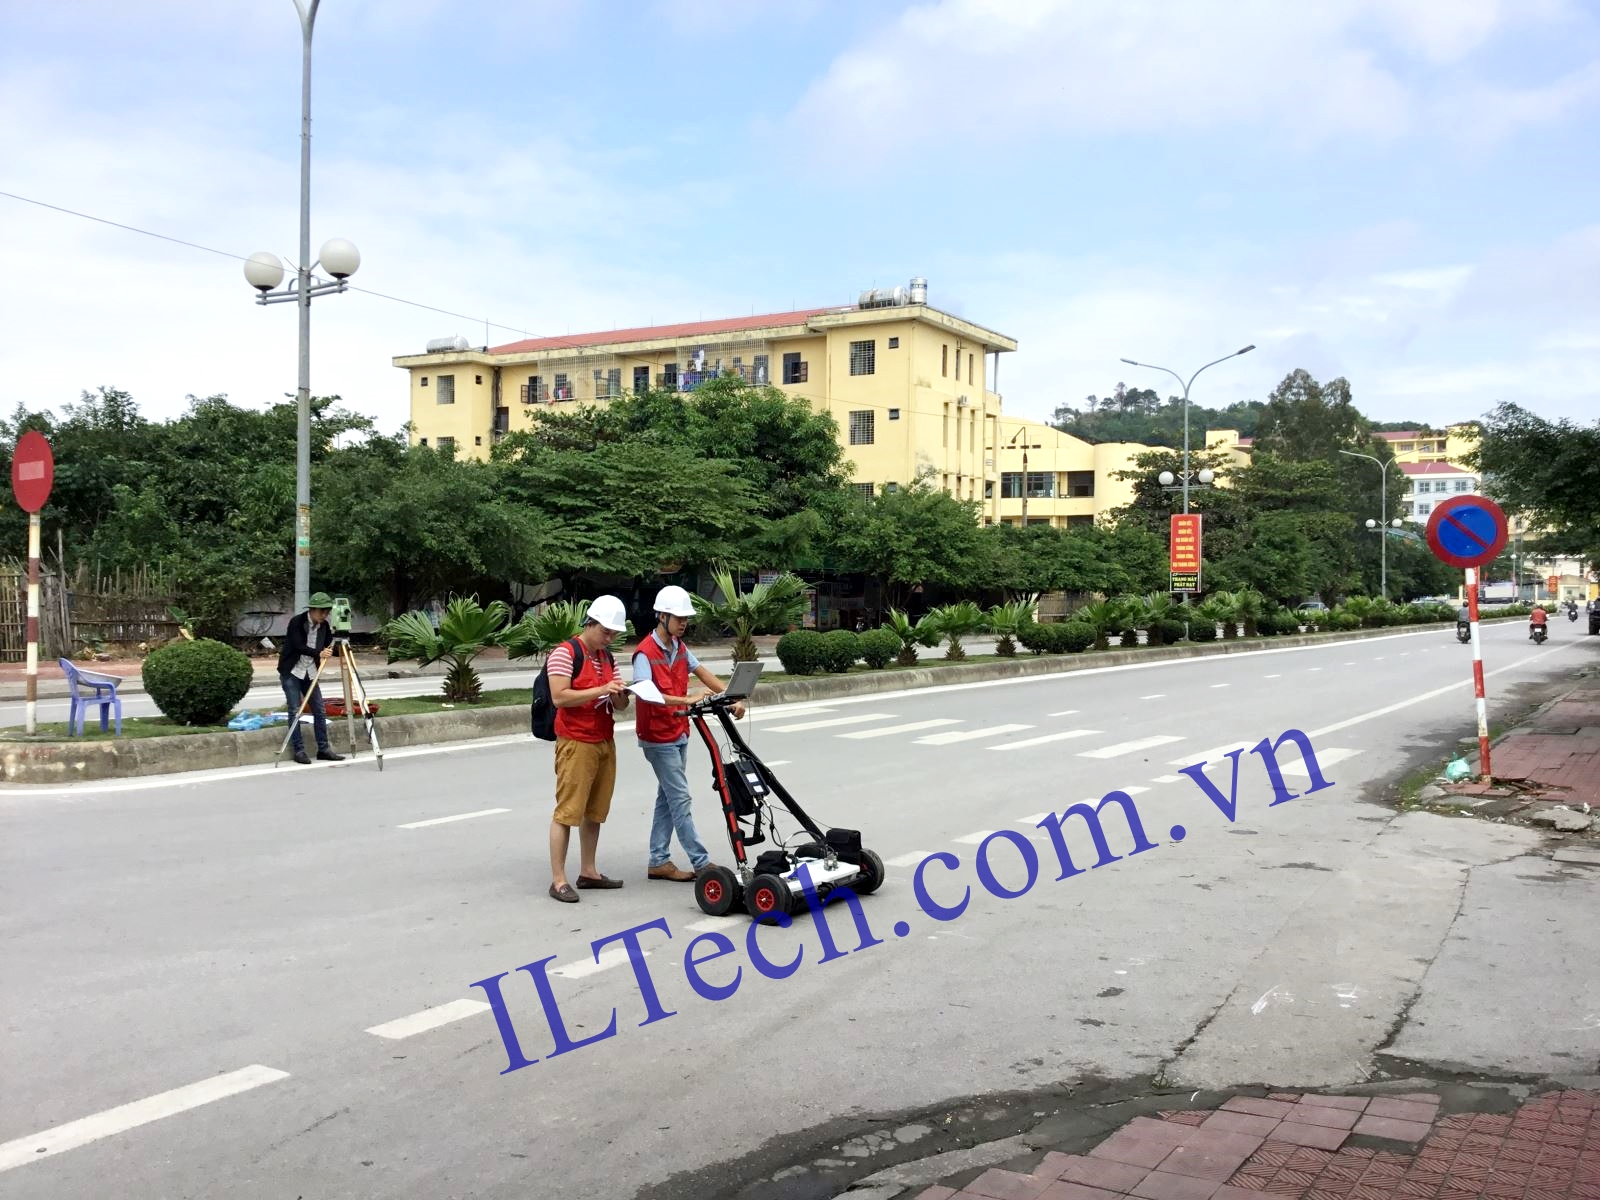 ILTech_GPR%20demonstration%20in%20Ha%20Long%20City.JPG